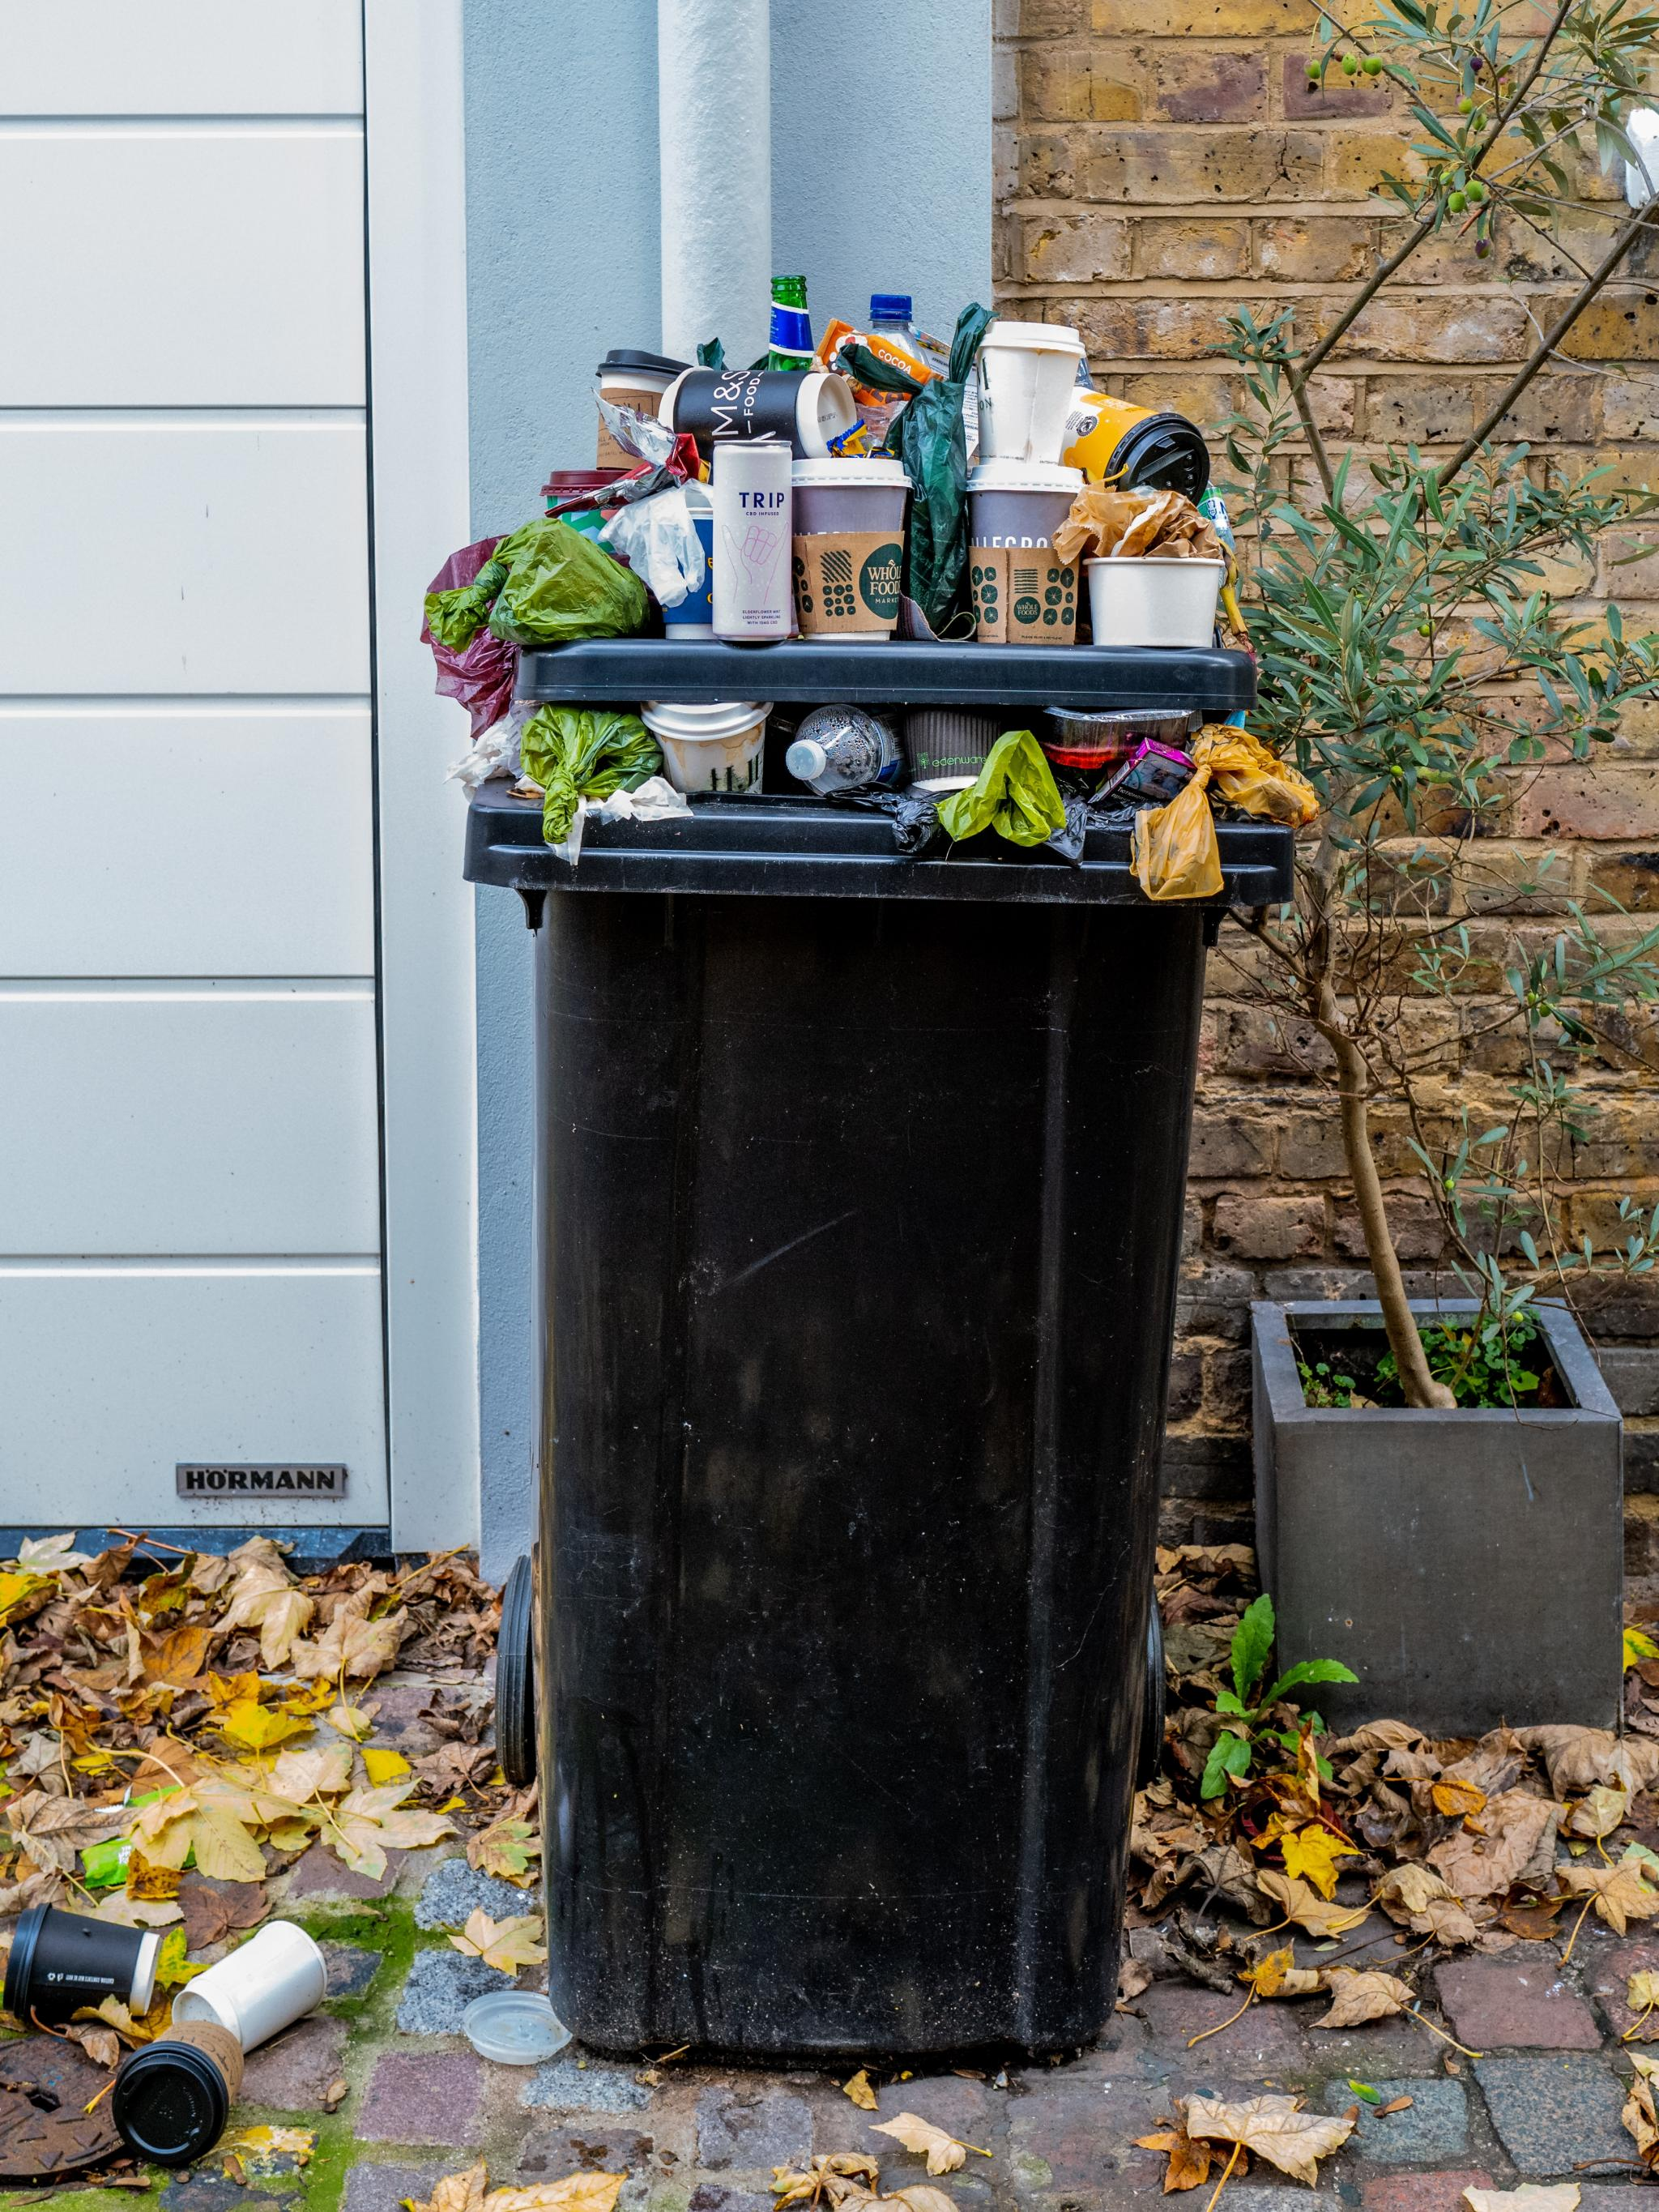 Garbage Can with Waste. Image by The Blowup. Source: Unsplash.